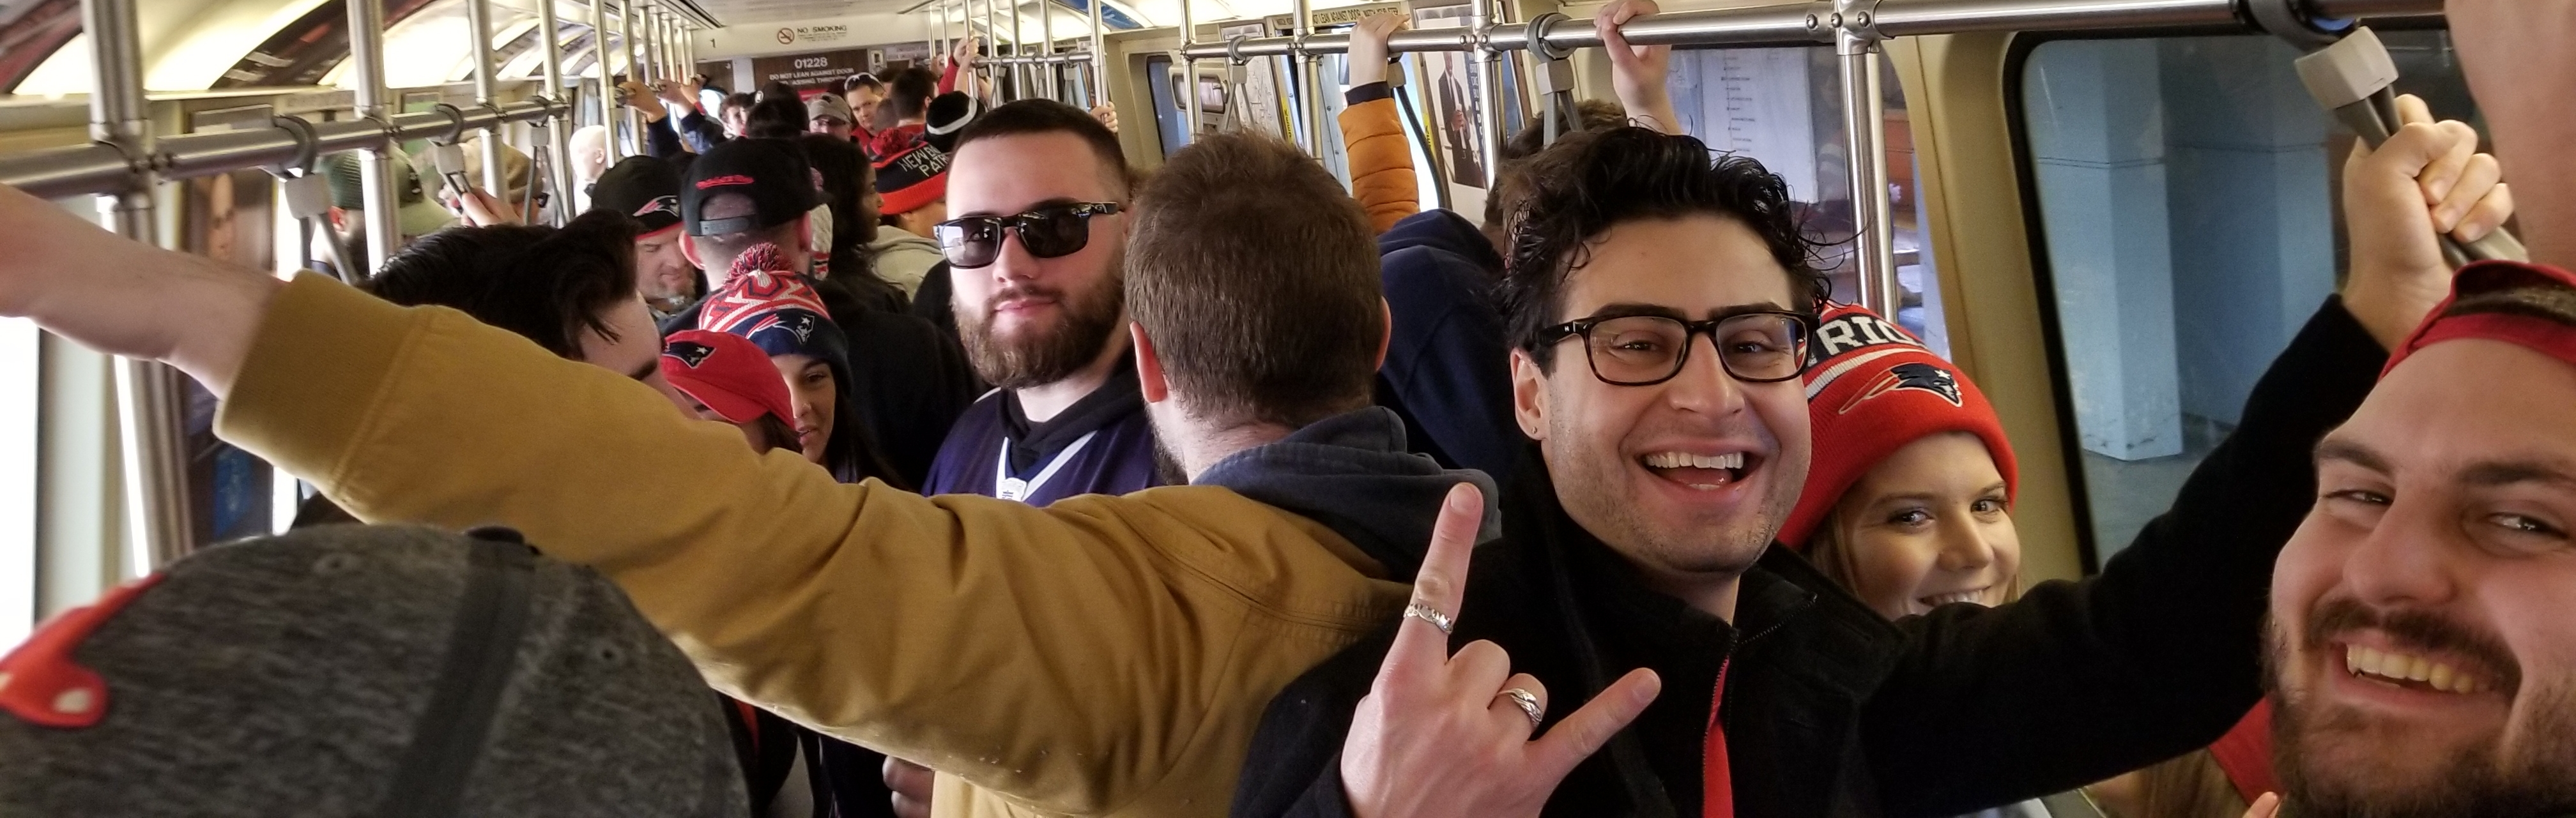 We were squished like sardines in the subway train heading to the parade. Everyone was friendly though!